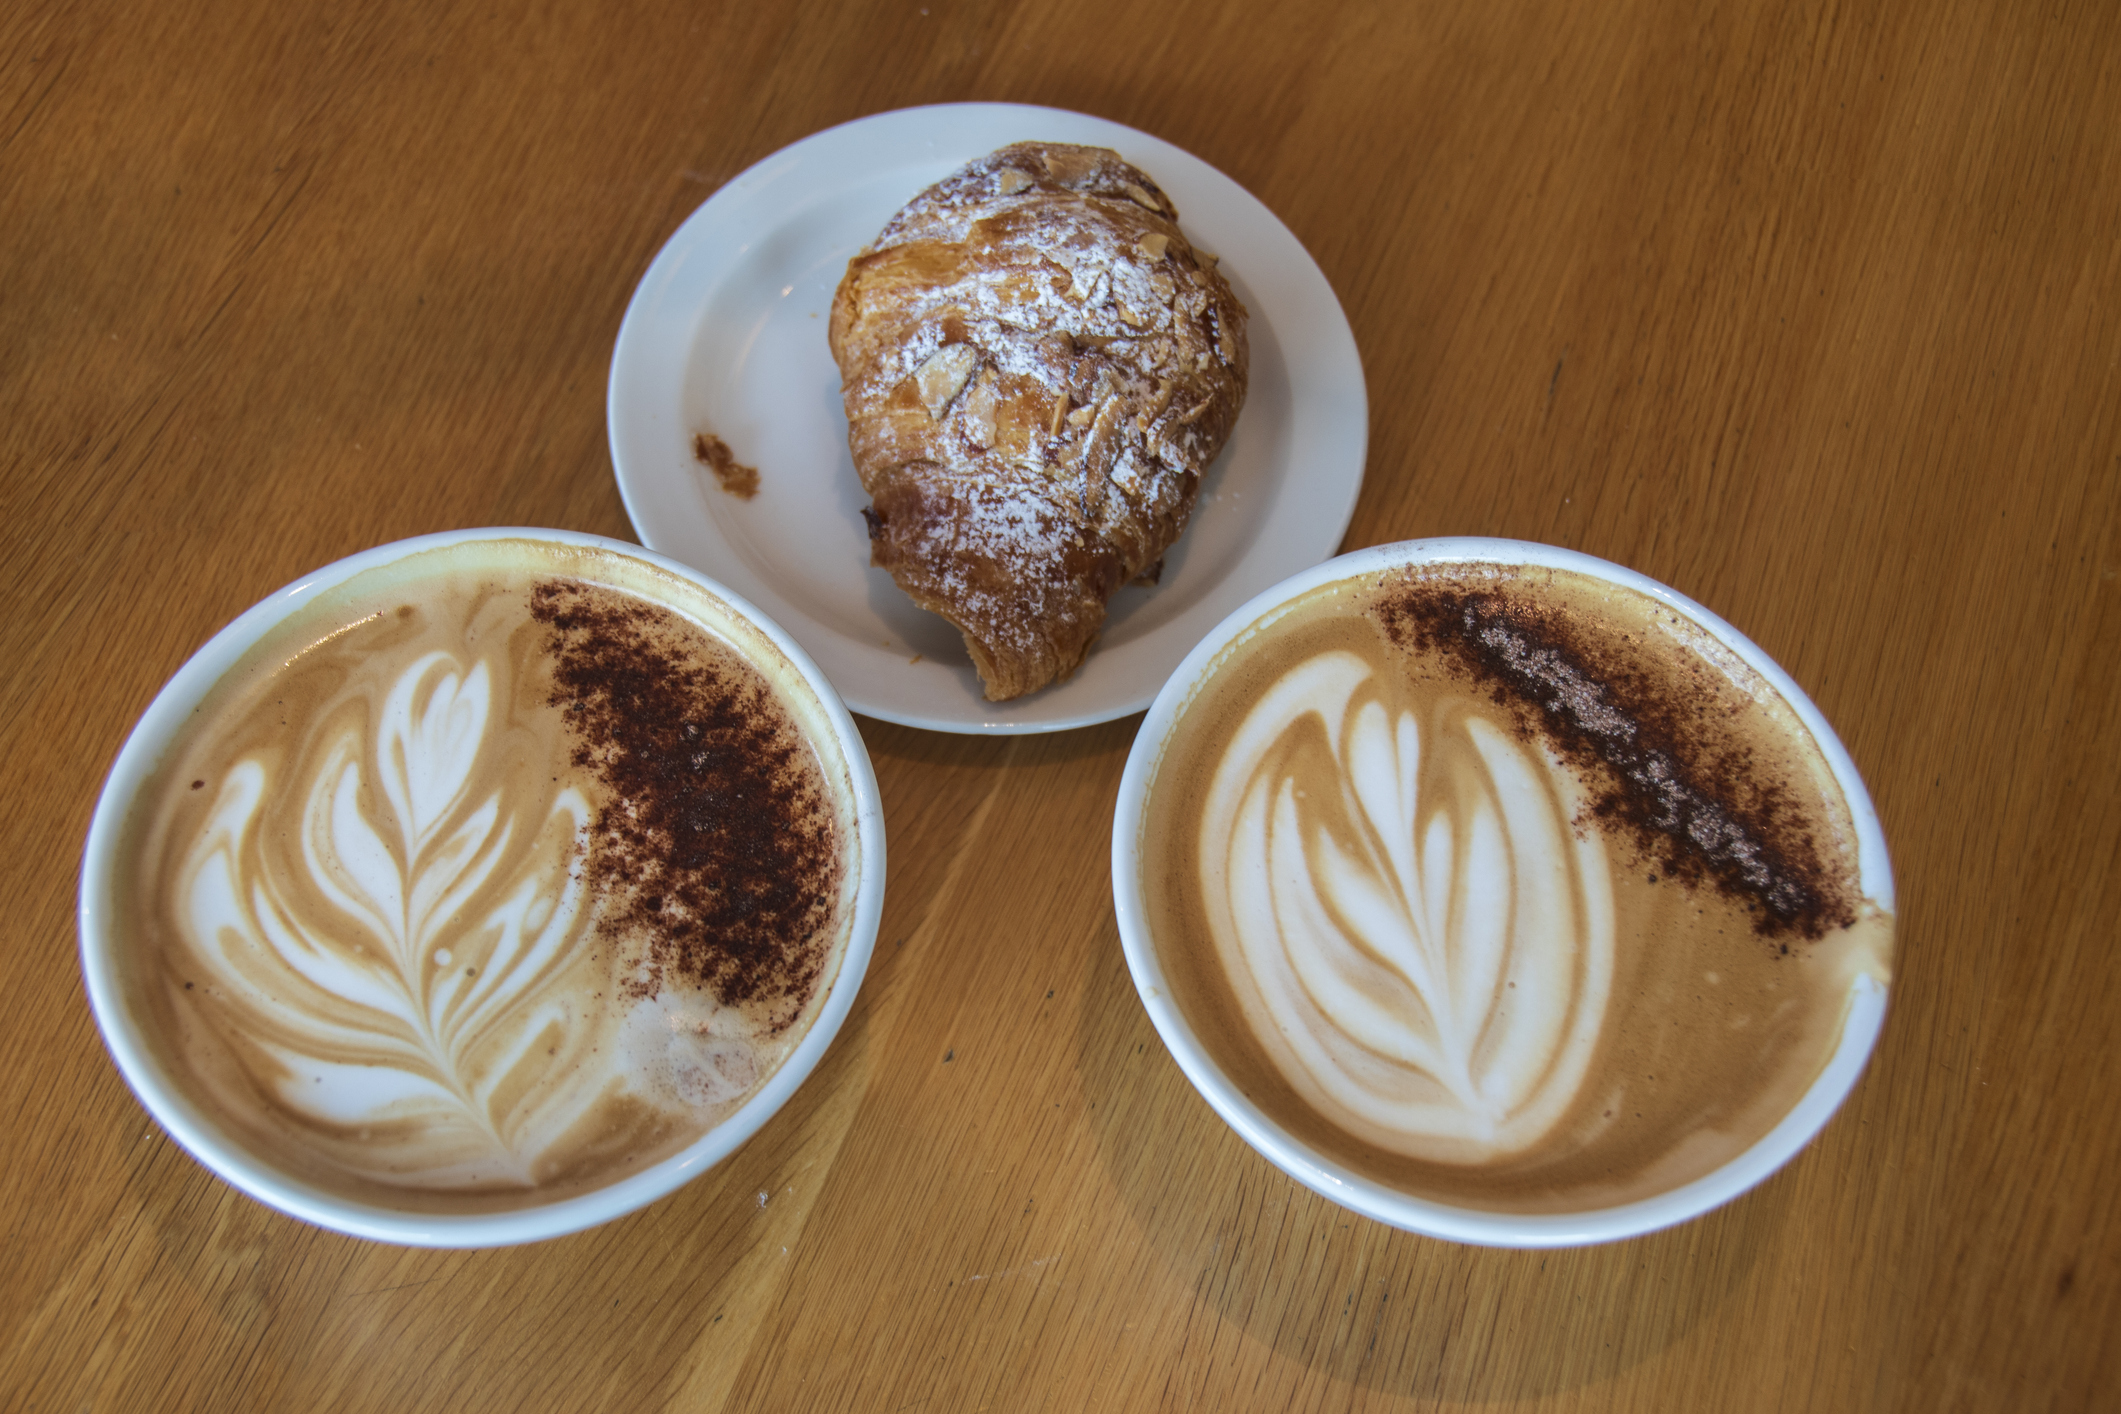 Two Cups of Cappuccino and a Pastry